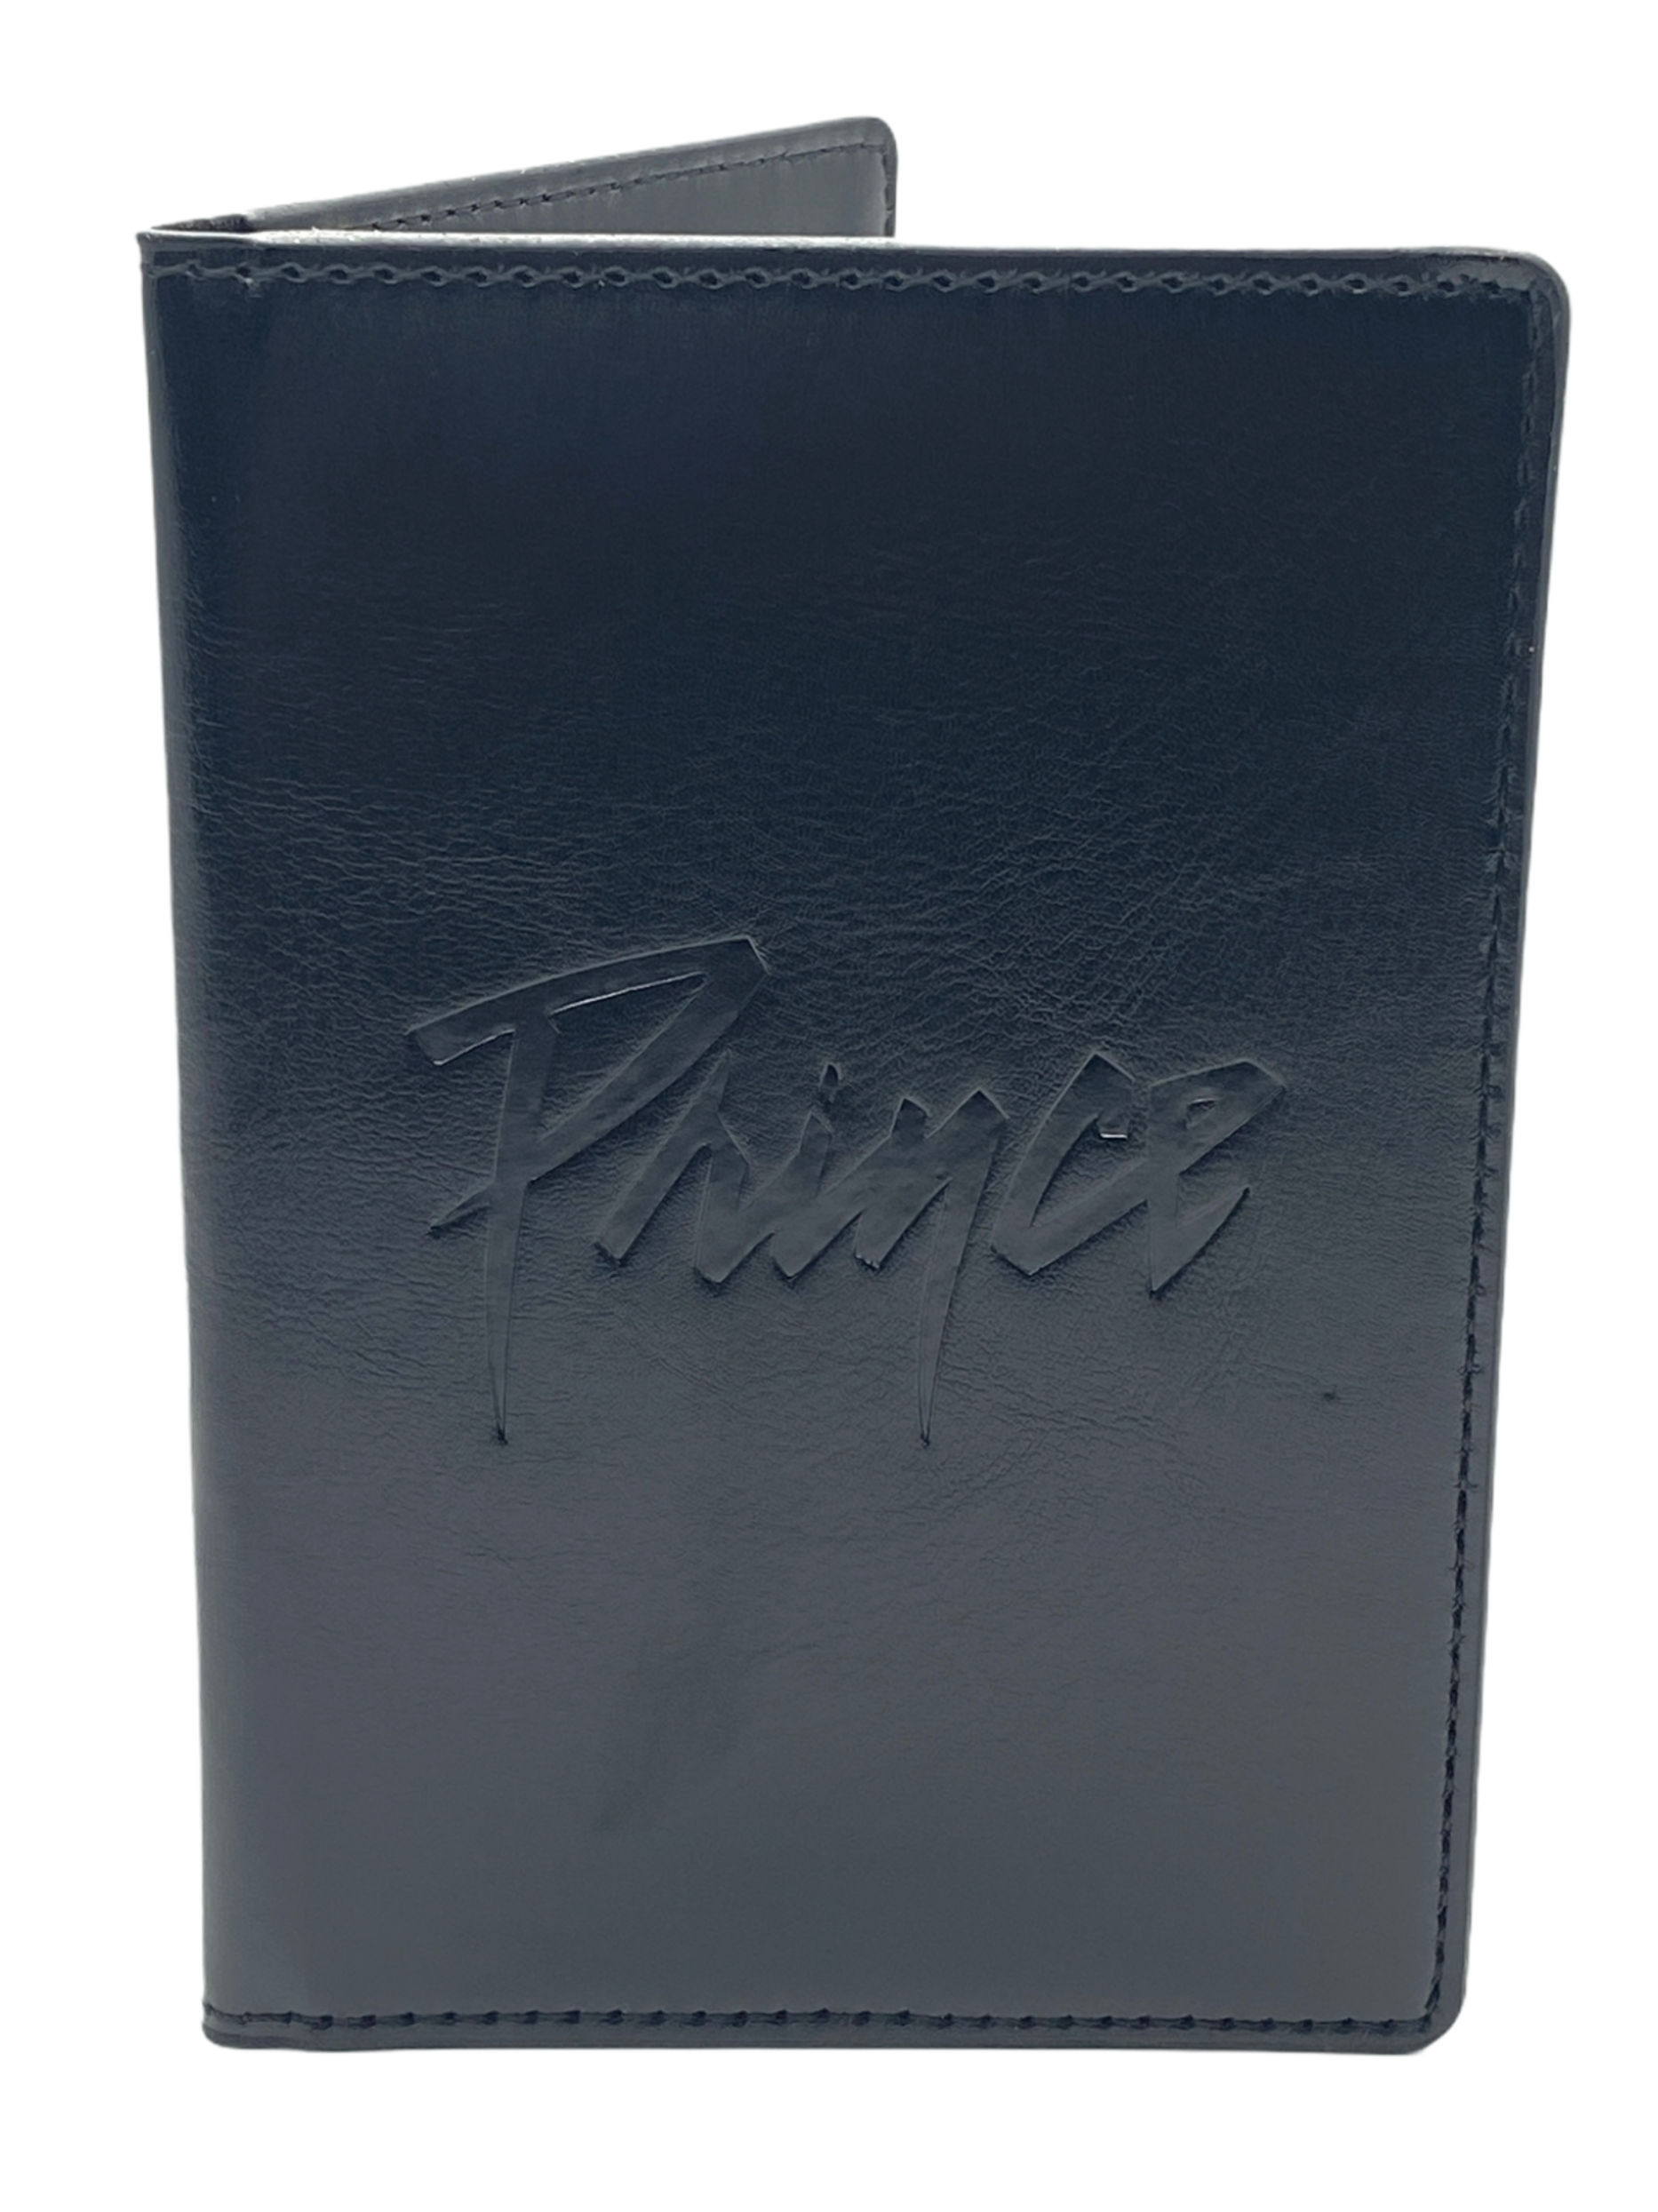 Prince Official Merchandise Passport Holder Black Embossed Brand New